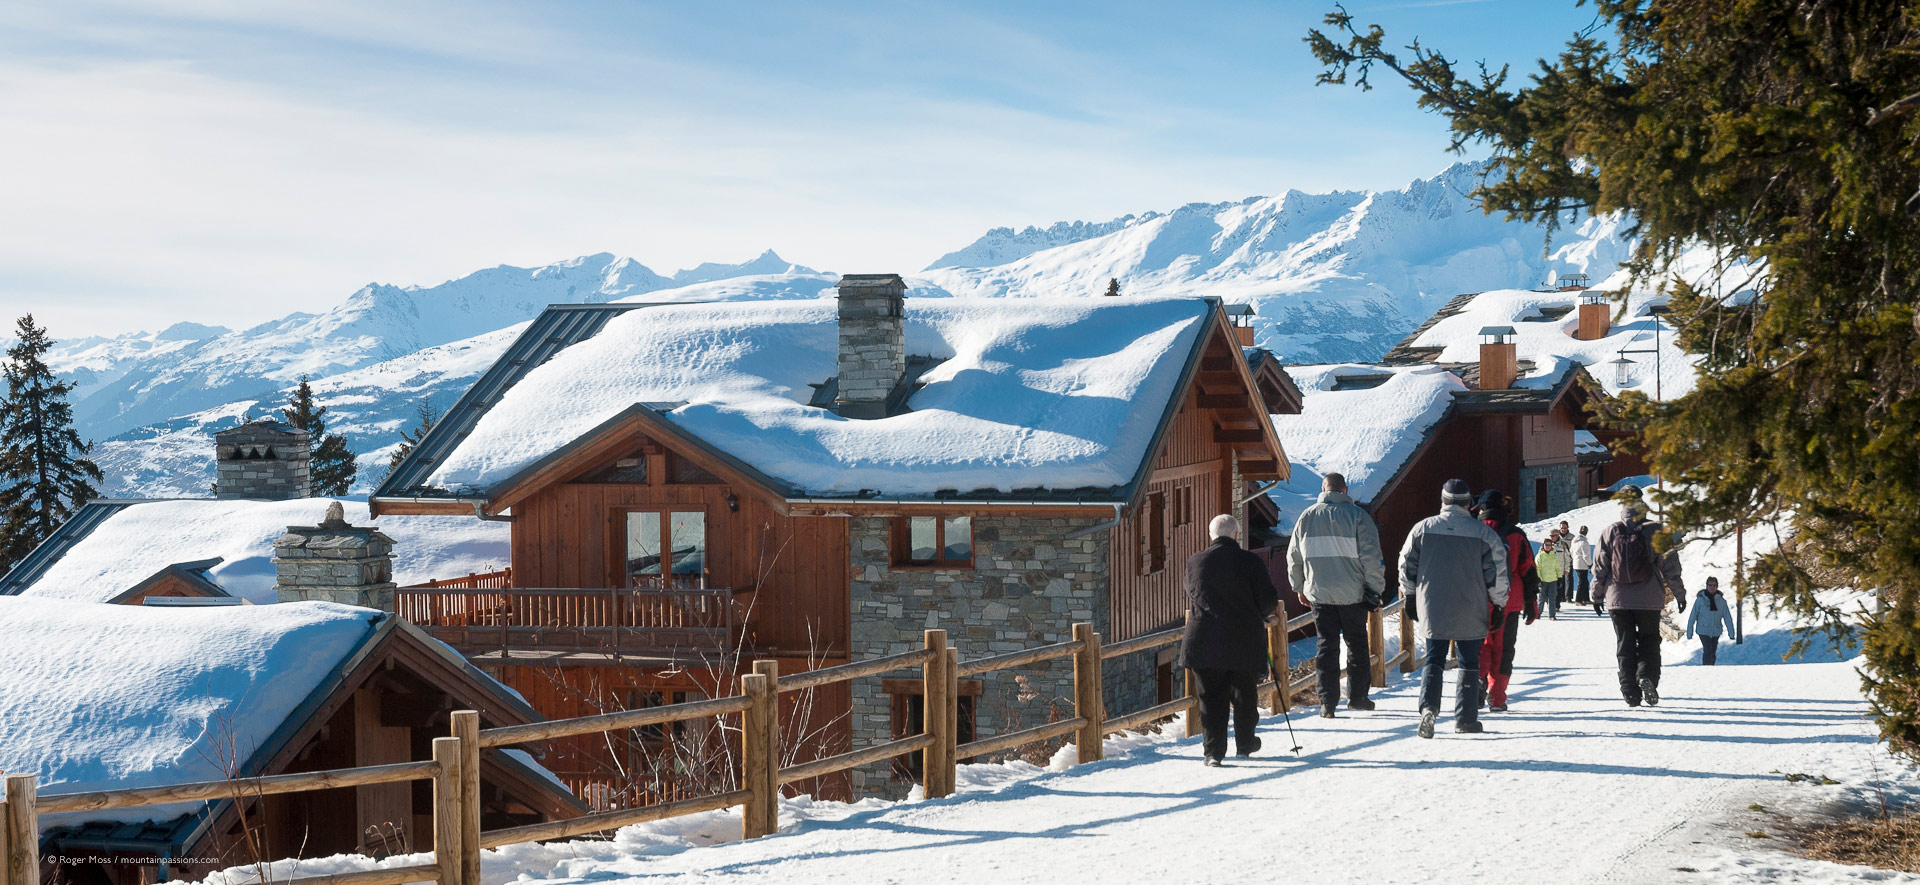 Late afternoon walkers on footpath with snow-covered chalets at La Rosiere.